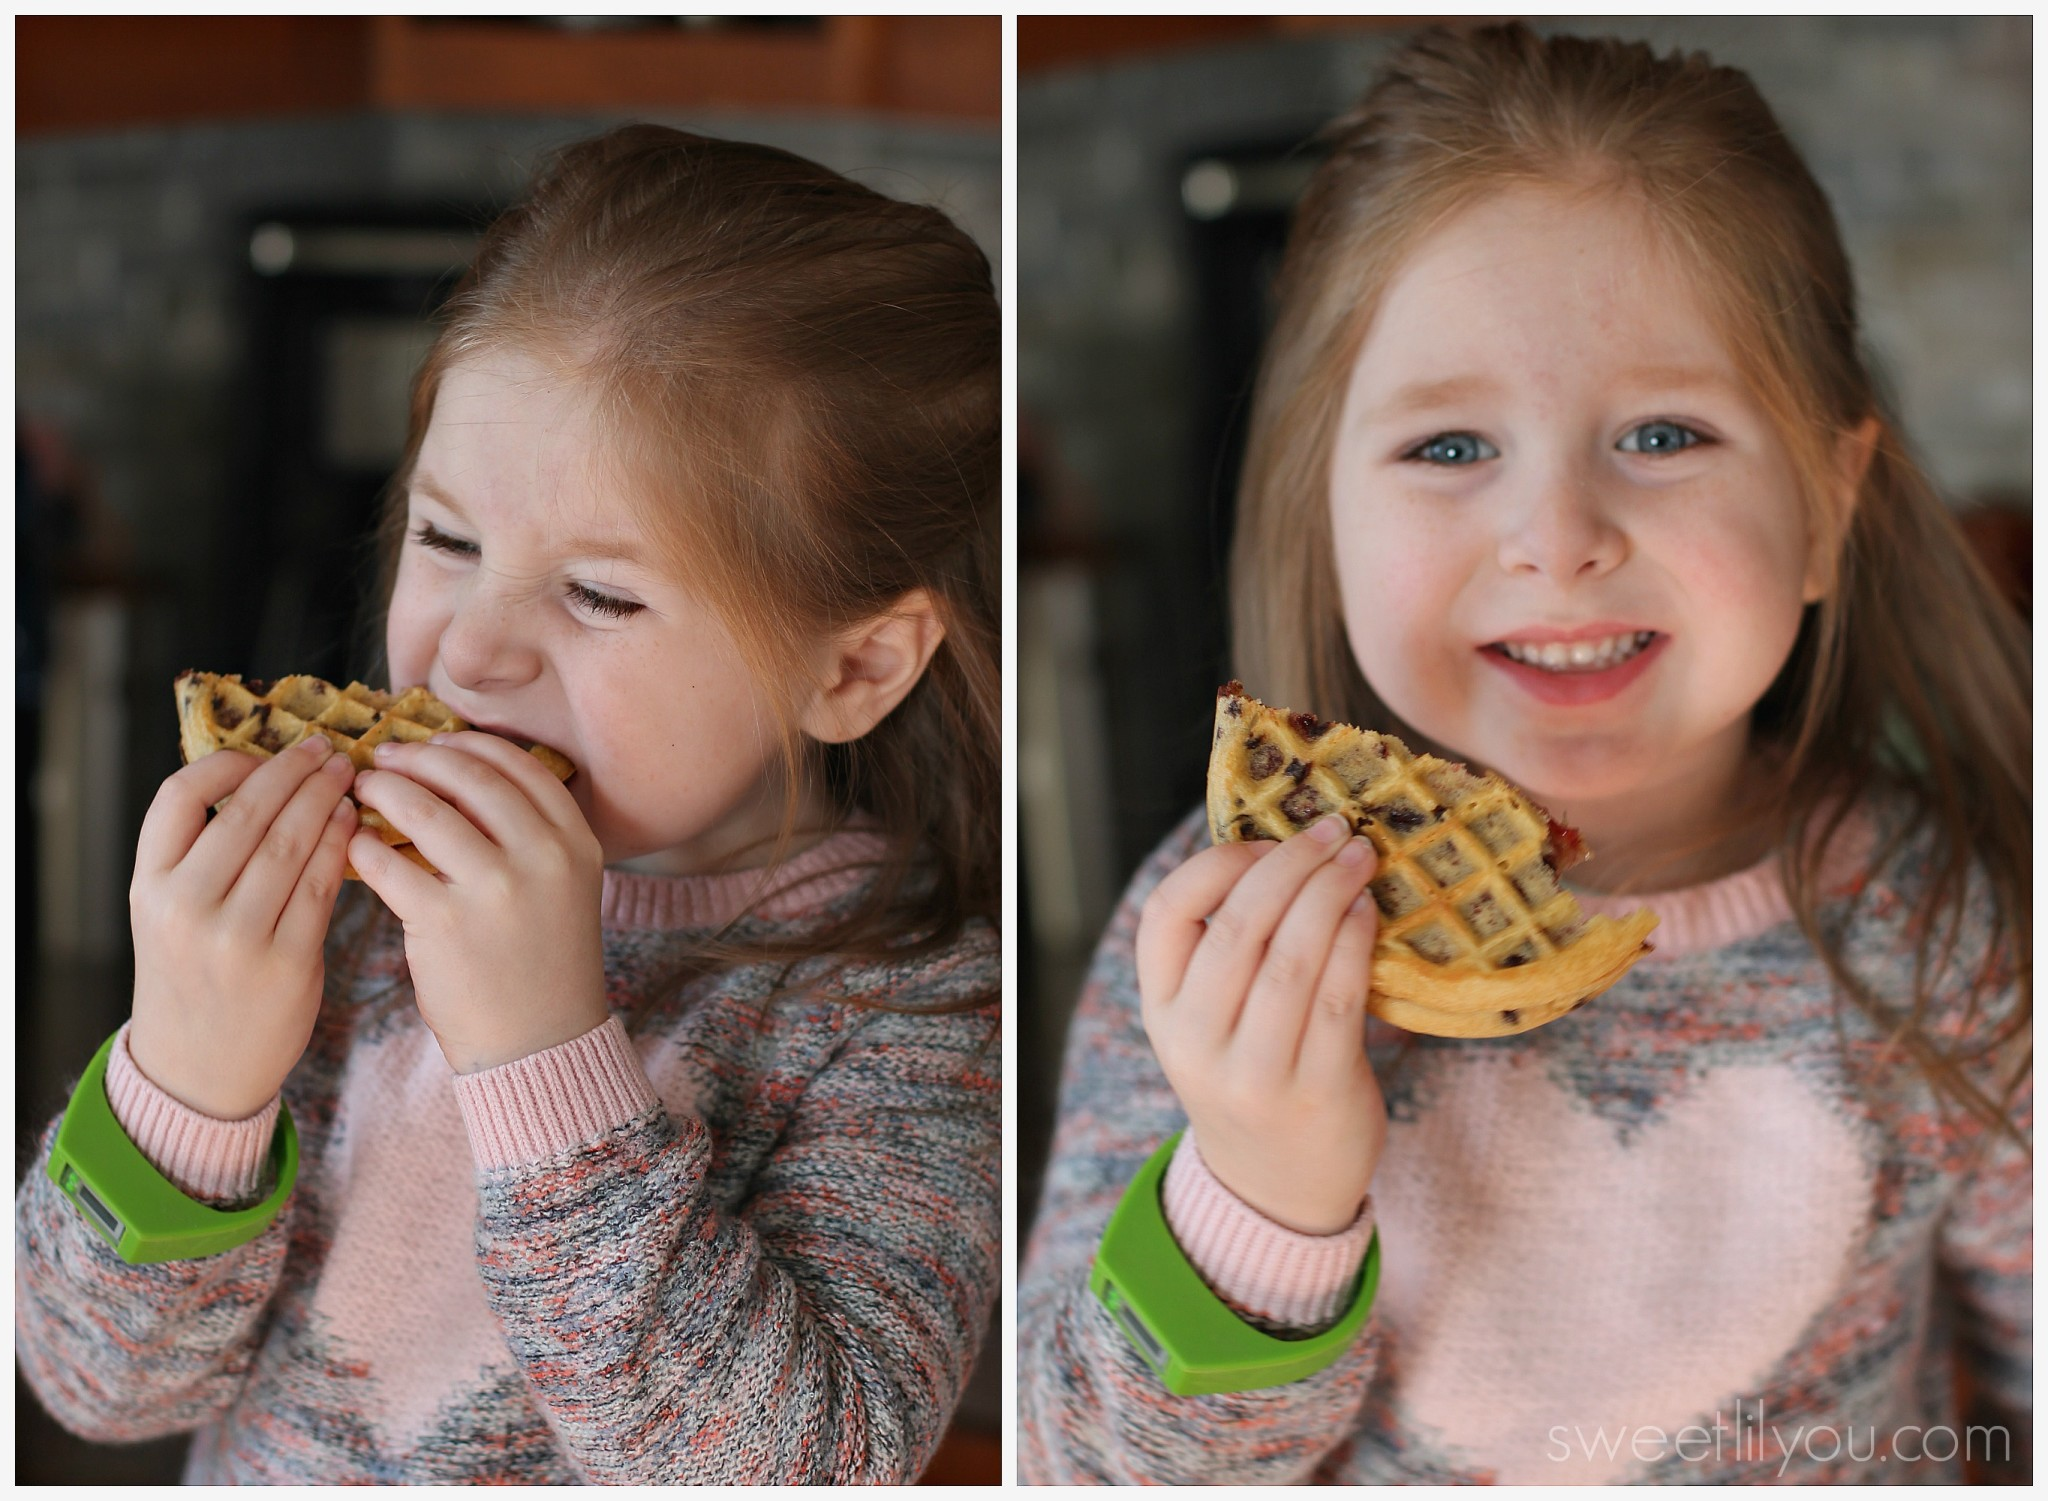 Kids love grilled cheese